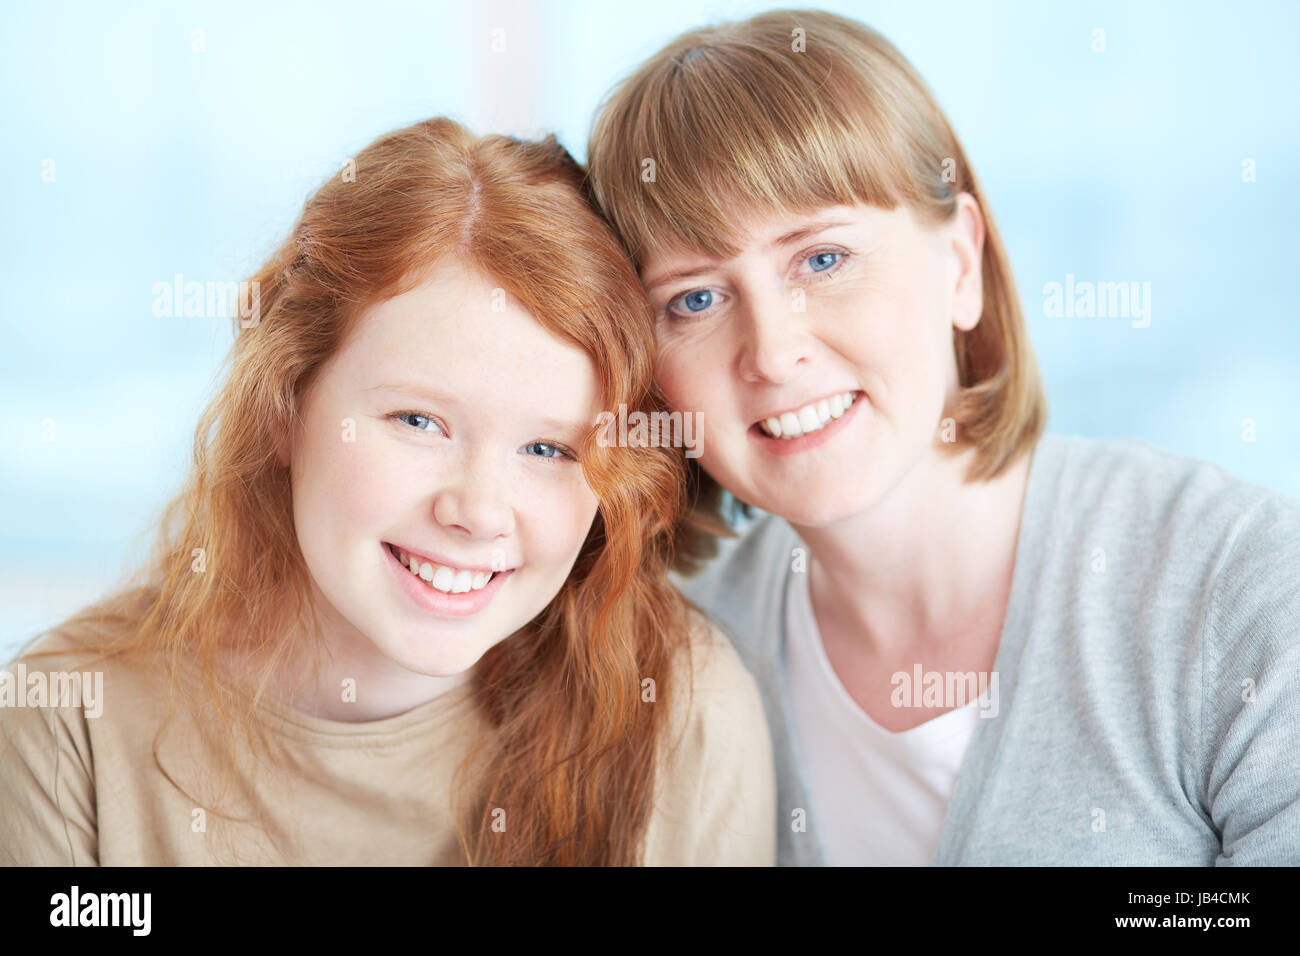 Lovely girl and her mother looking at camera with toothy smiles - Stock Image